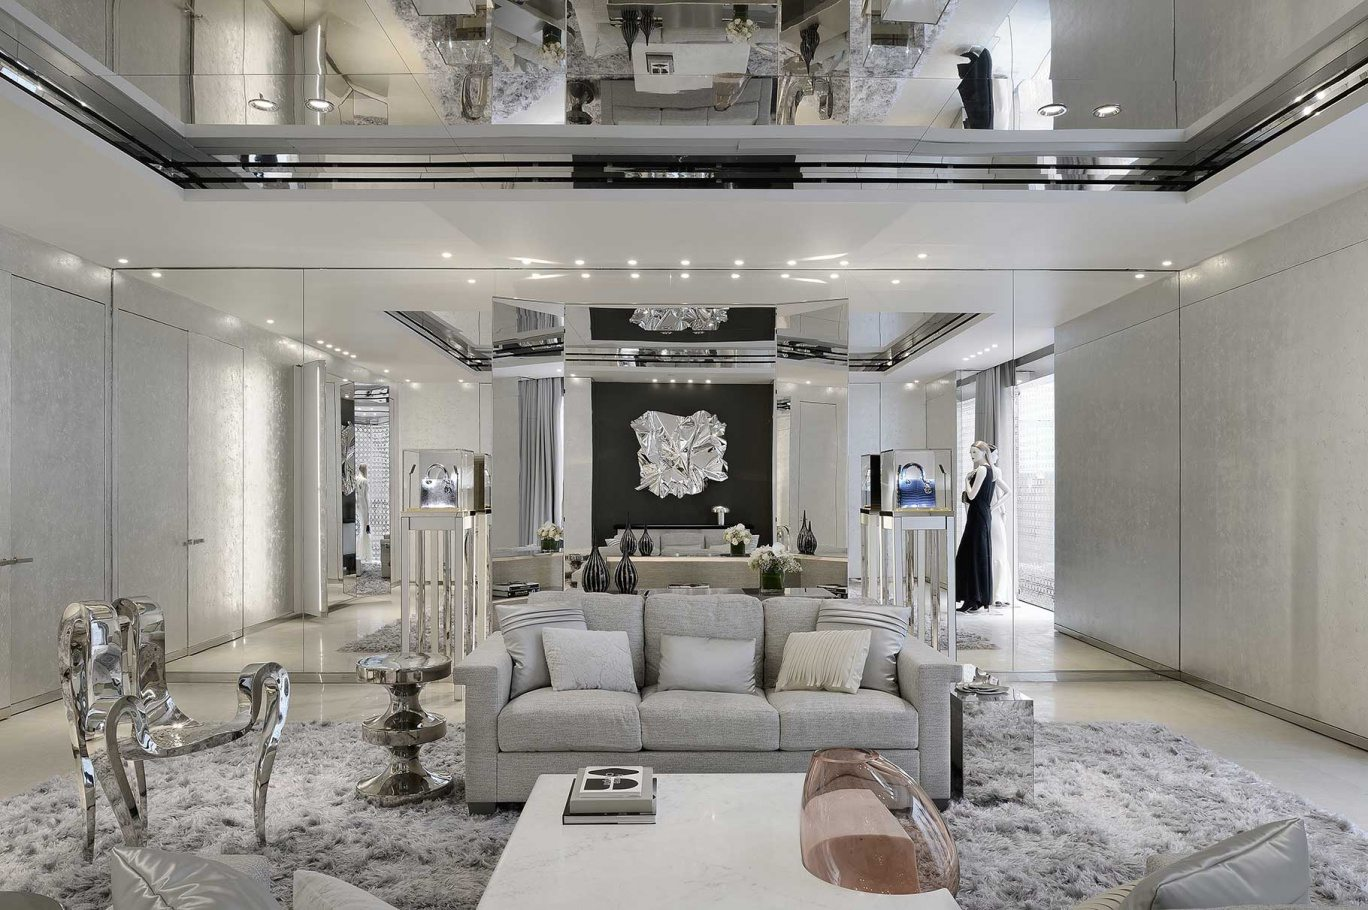 Christian dior boutique in washington dc les fa ons for Boutique center